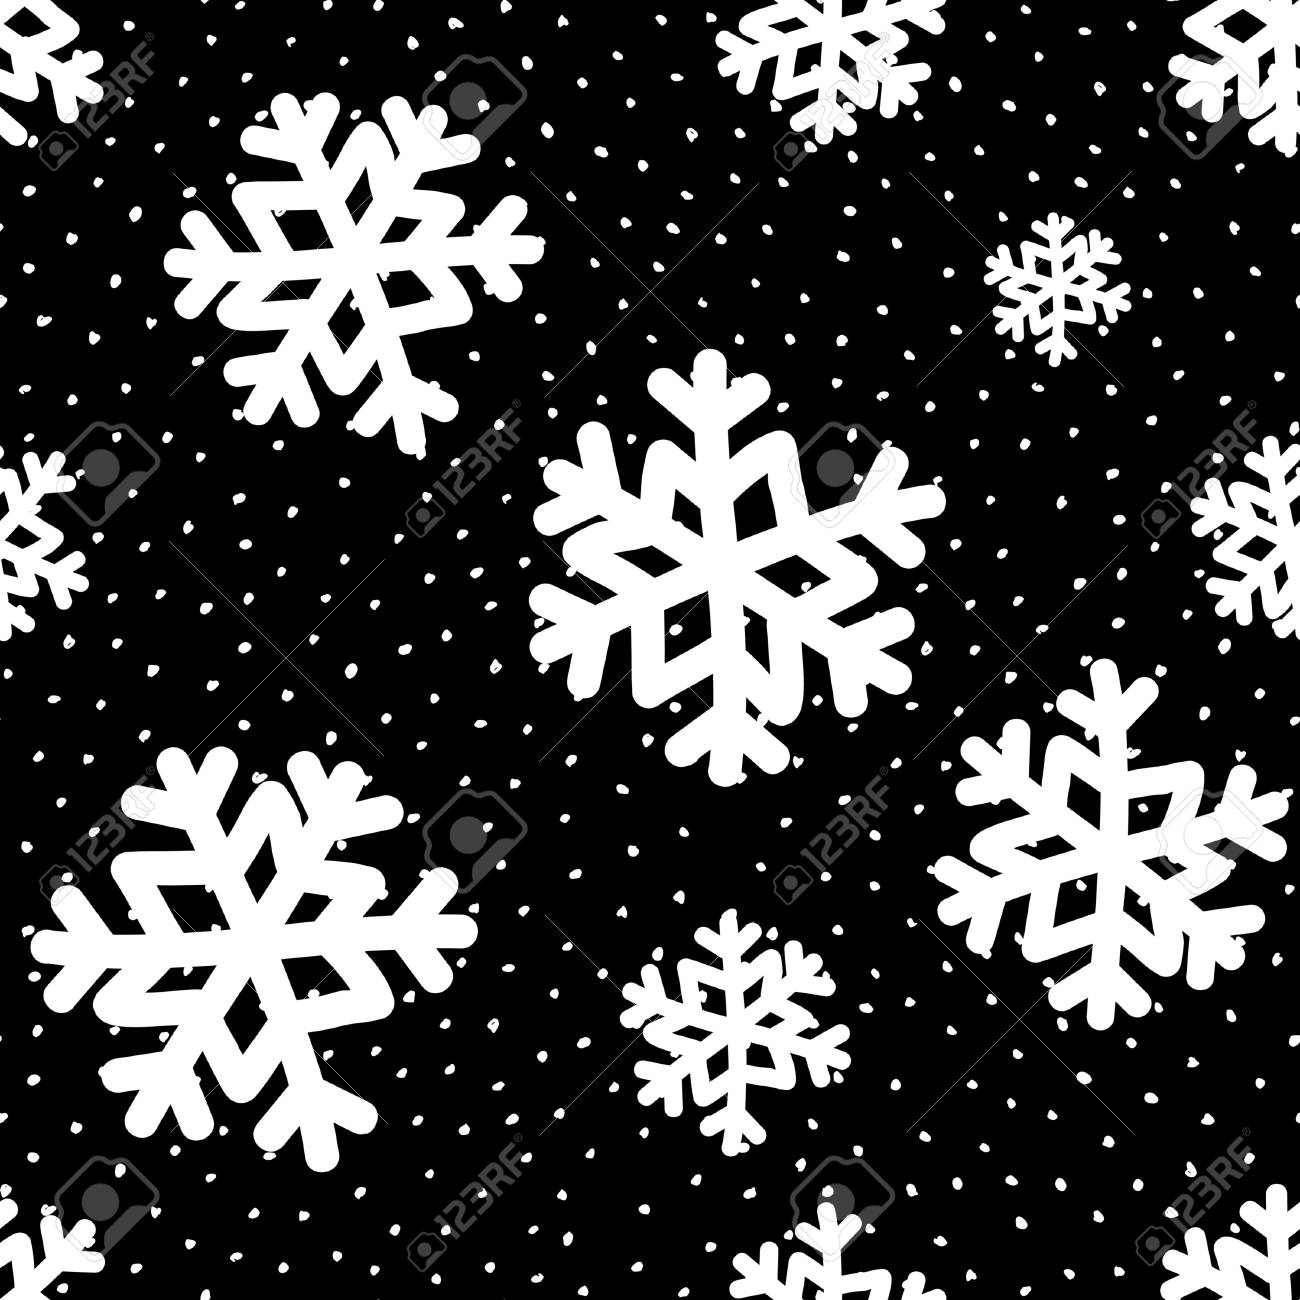 Seamless Repeating Pattern With White Snowflakes On Black